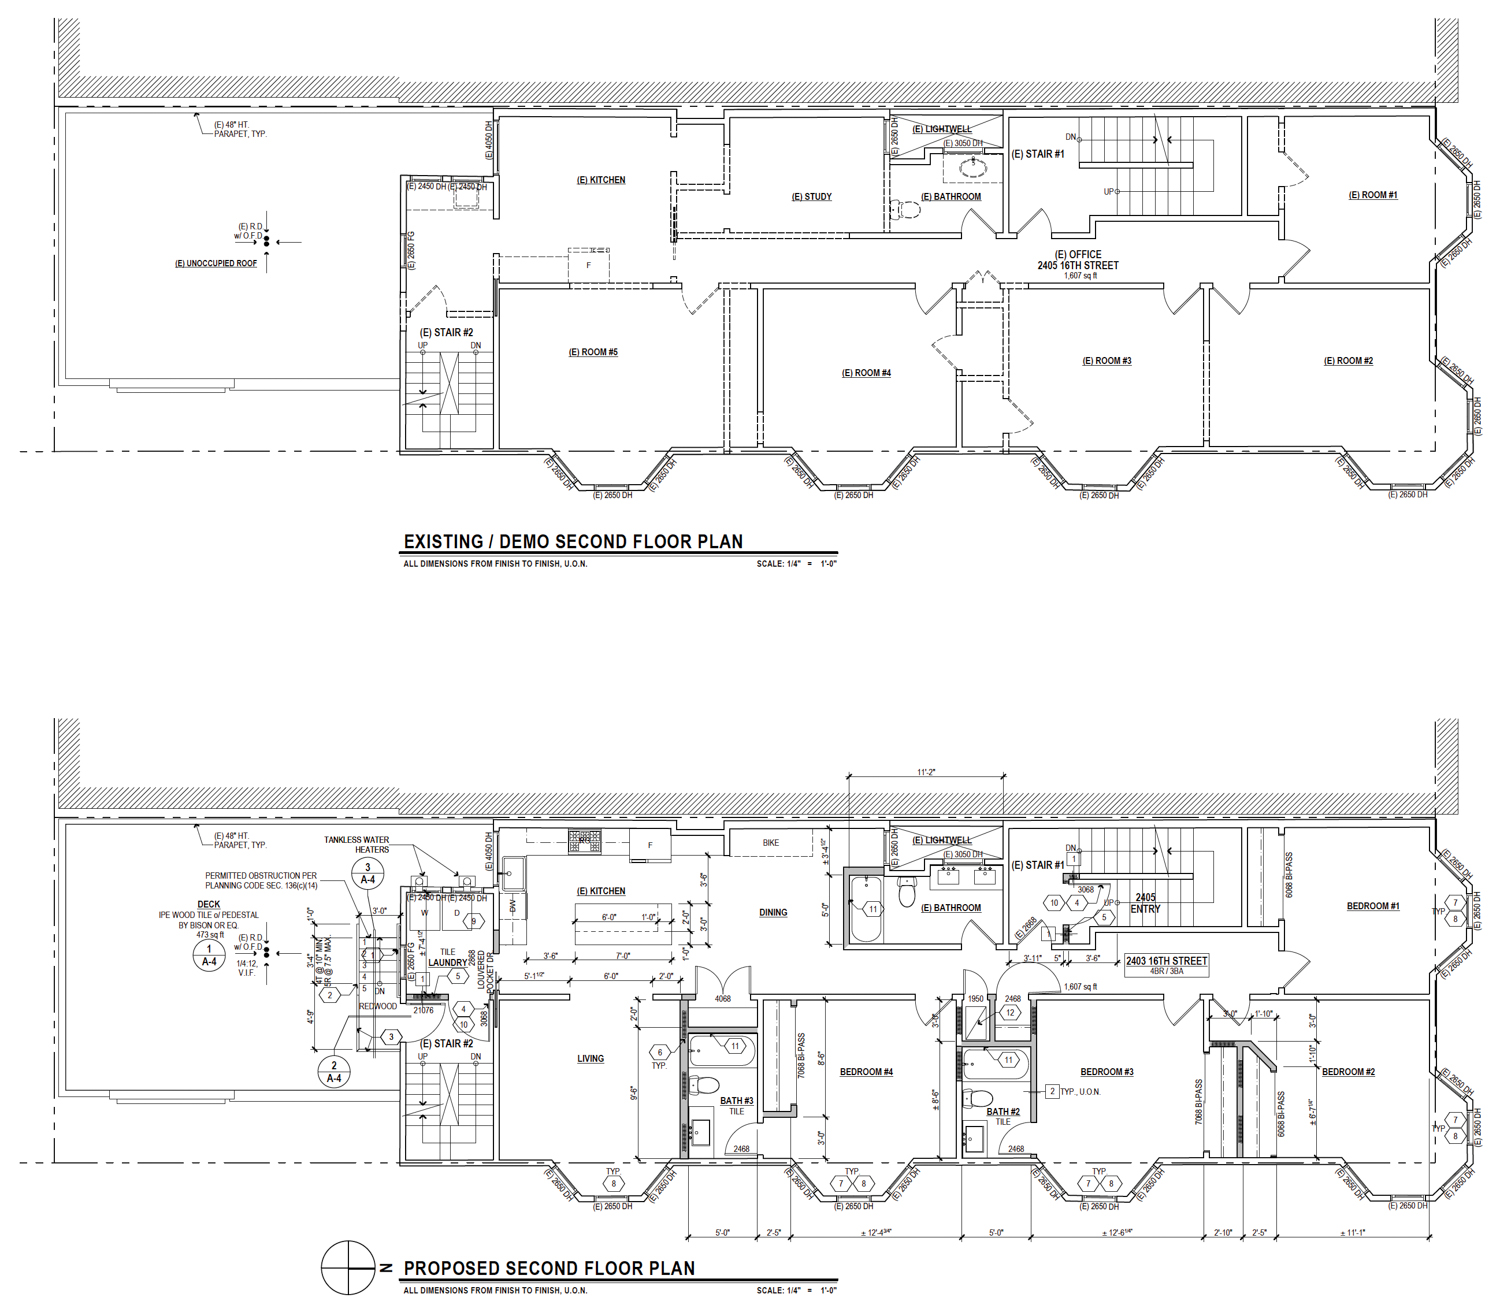 2403 16th Street, second-level existing floor plan above, proposed floor plan below, drawing by Schaub Ly Architects